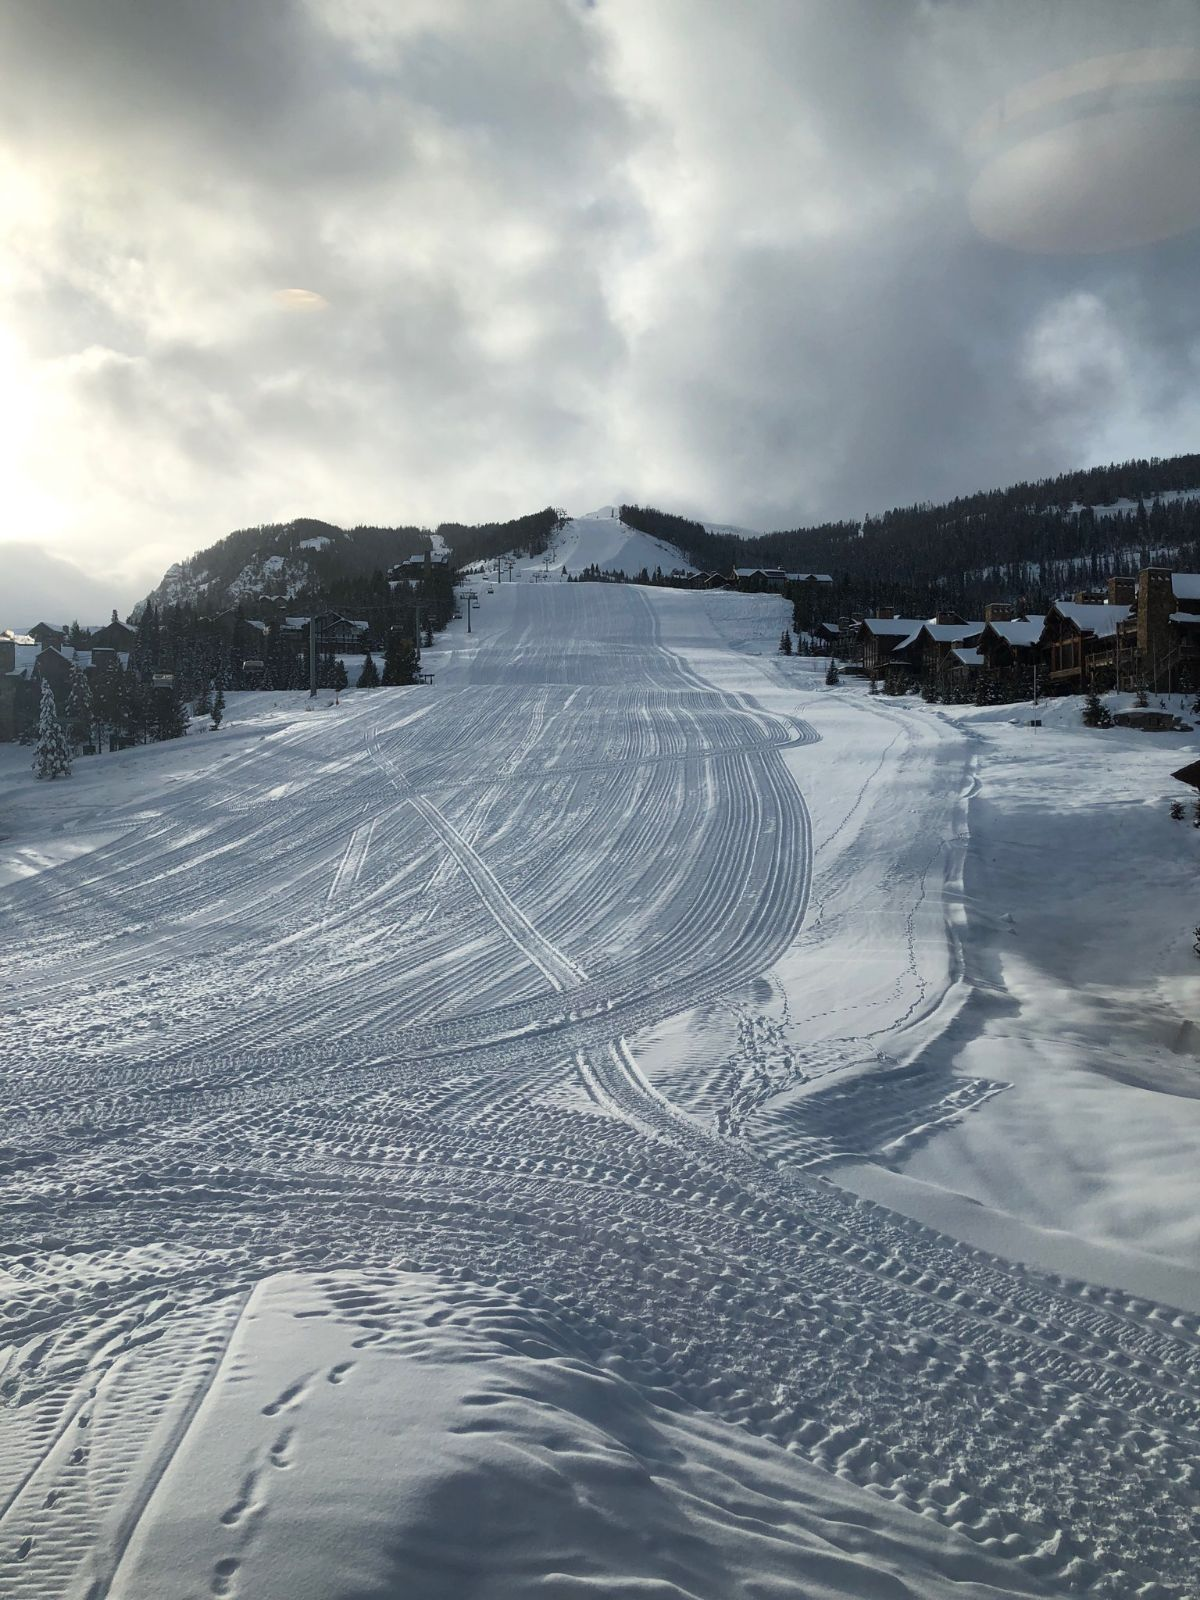 Skiing and boarding at the Club includes over 100 runs, 2,700 skiable acres, and 2,700 vertical feet that suit enthusiasts of all abilities – with a perfect mix of beginner terrain, intermediate runs, expert chutes, trees, and gullies.